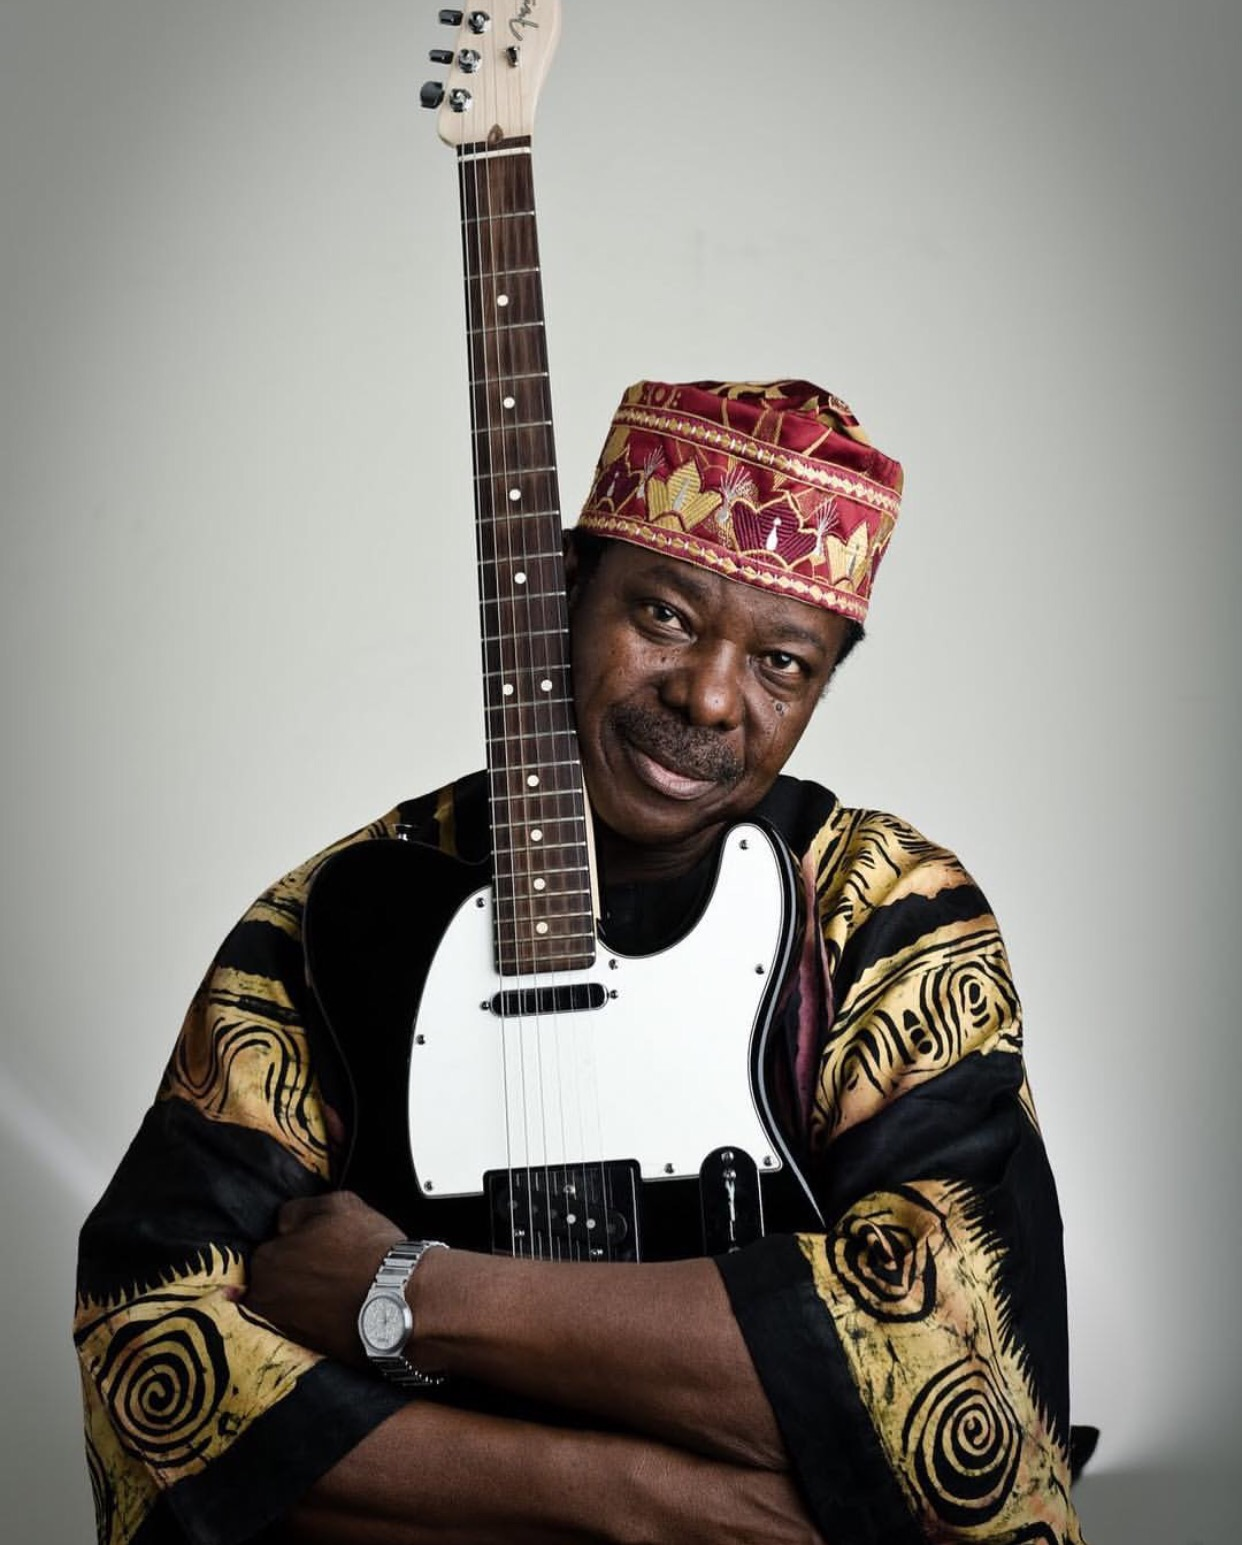 #KSAAT70: See King Sunny Ade's Favorite Guitar That Was Auctioned For N52.1 Million At His Concert